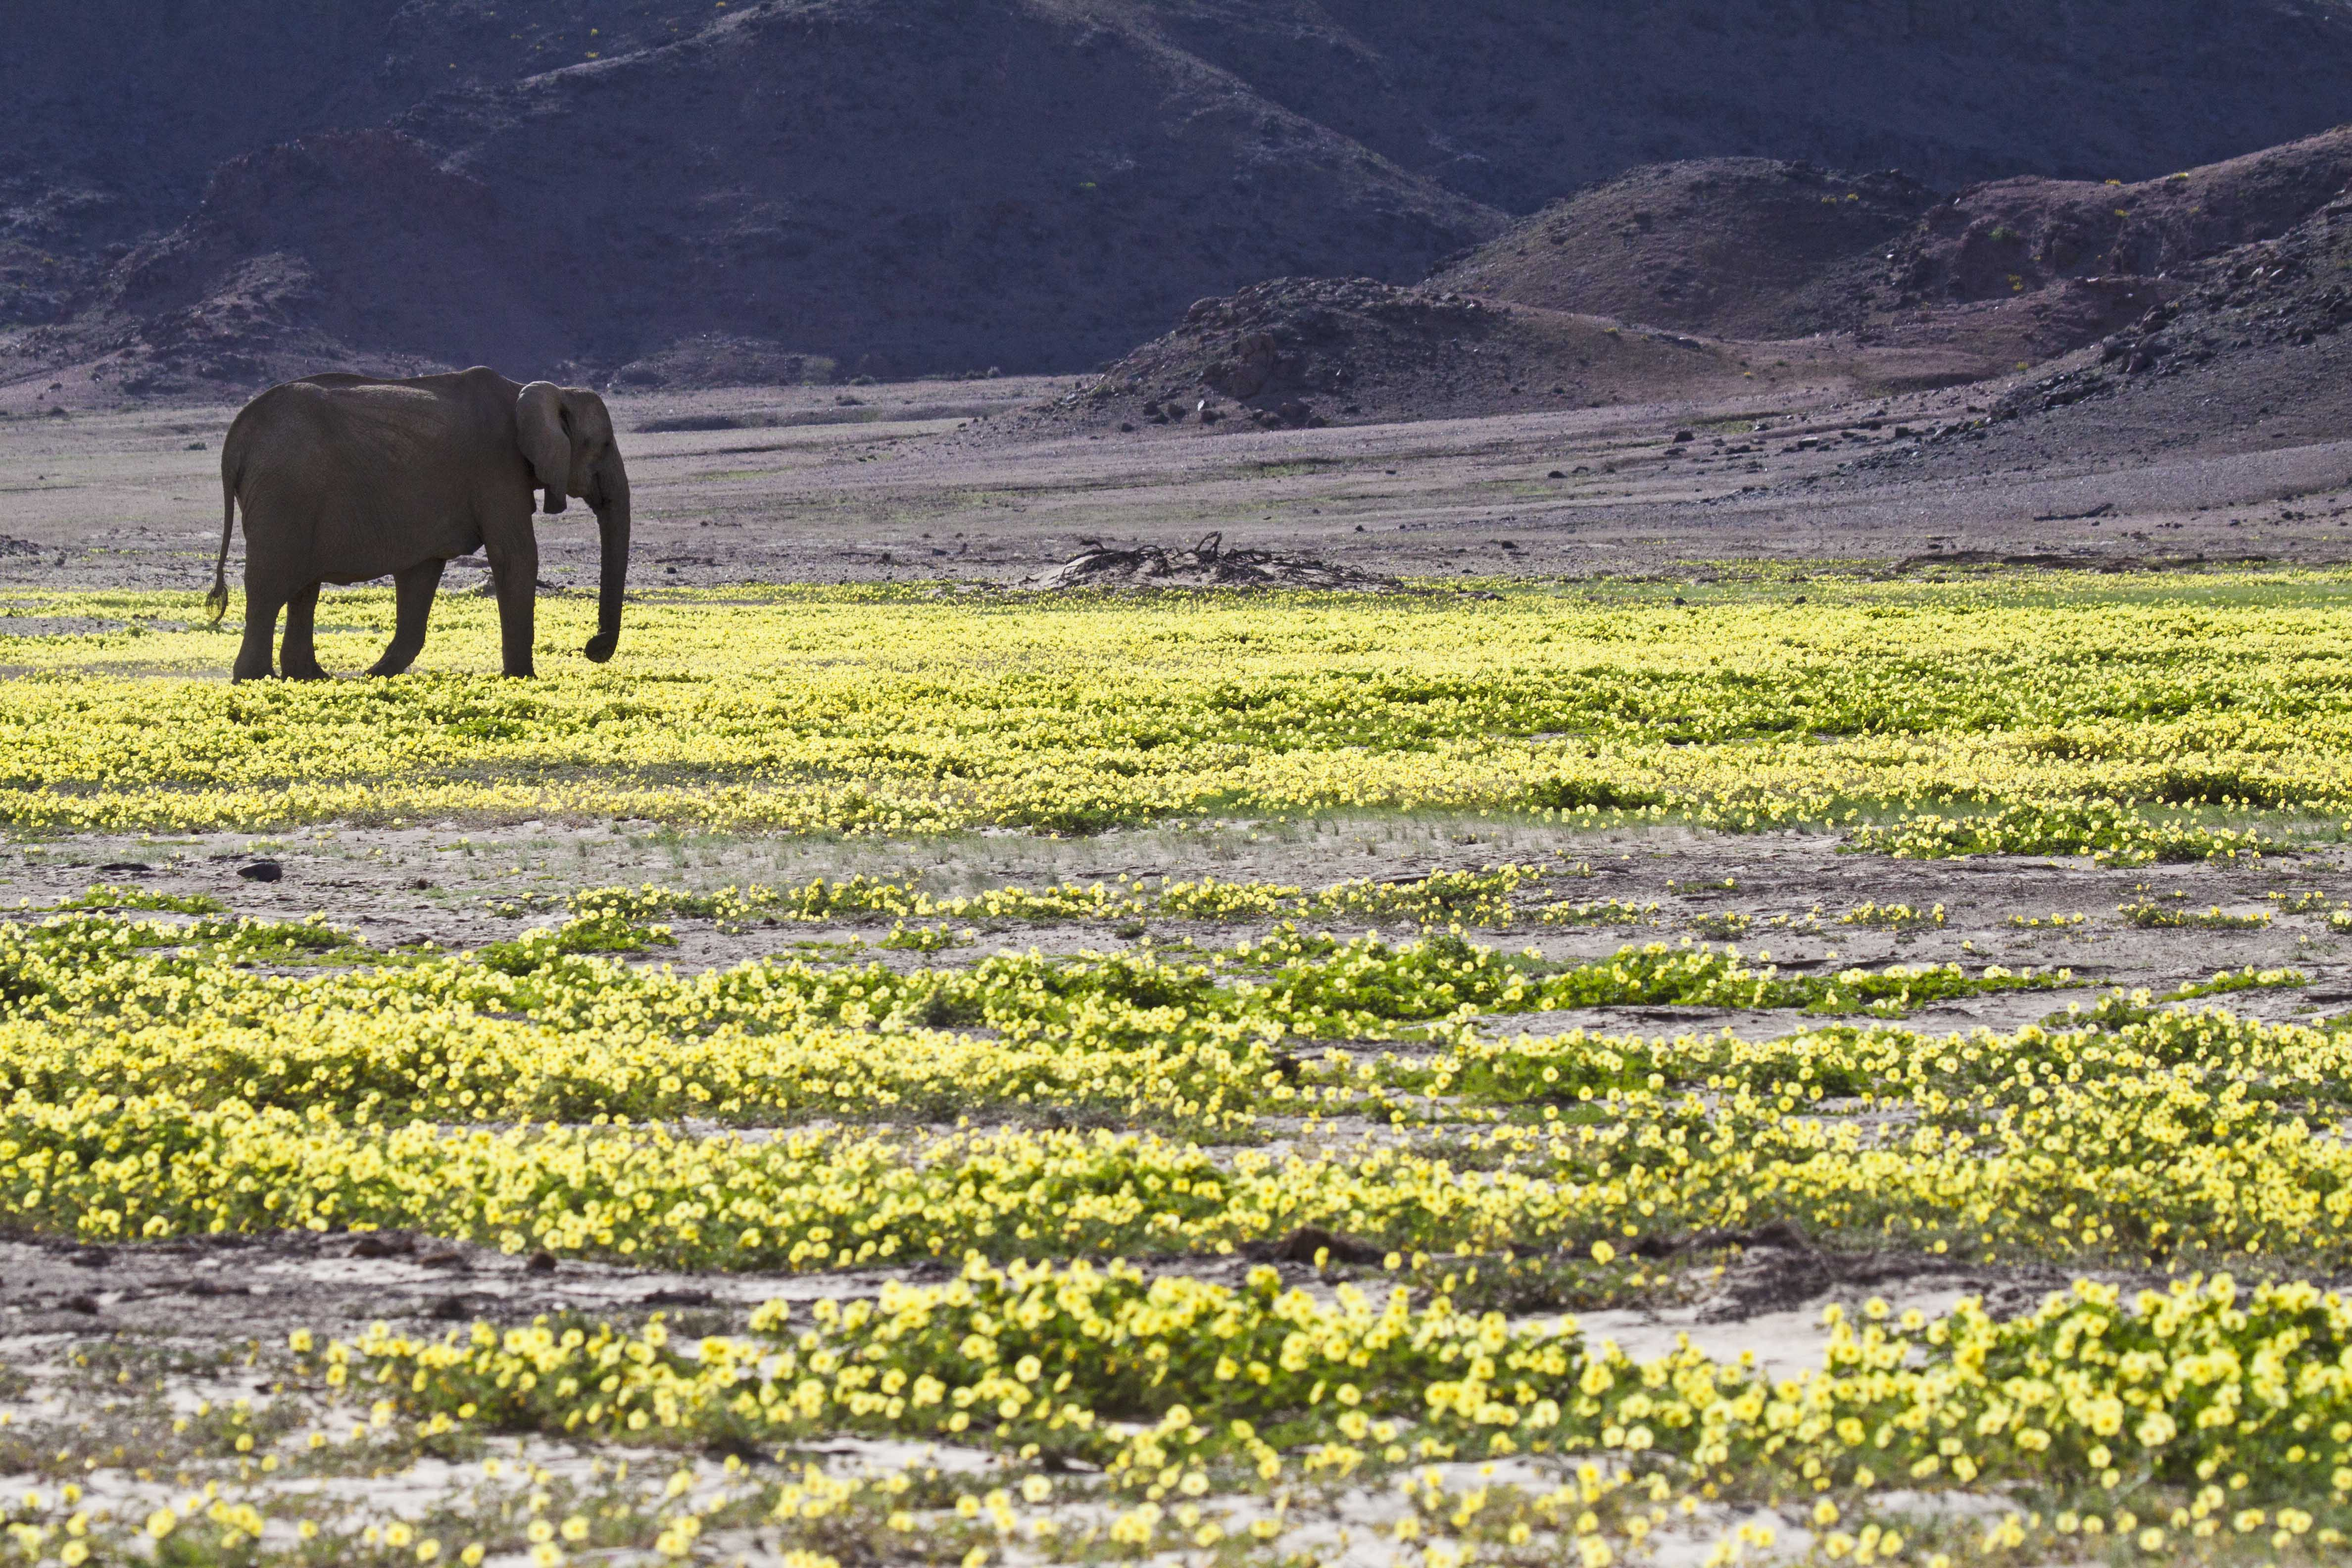 Desert Elephant in Flowers, Hoanib River, Namibia